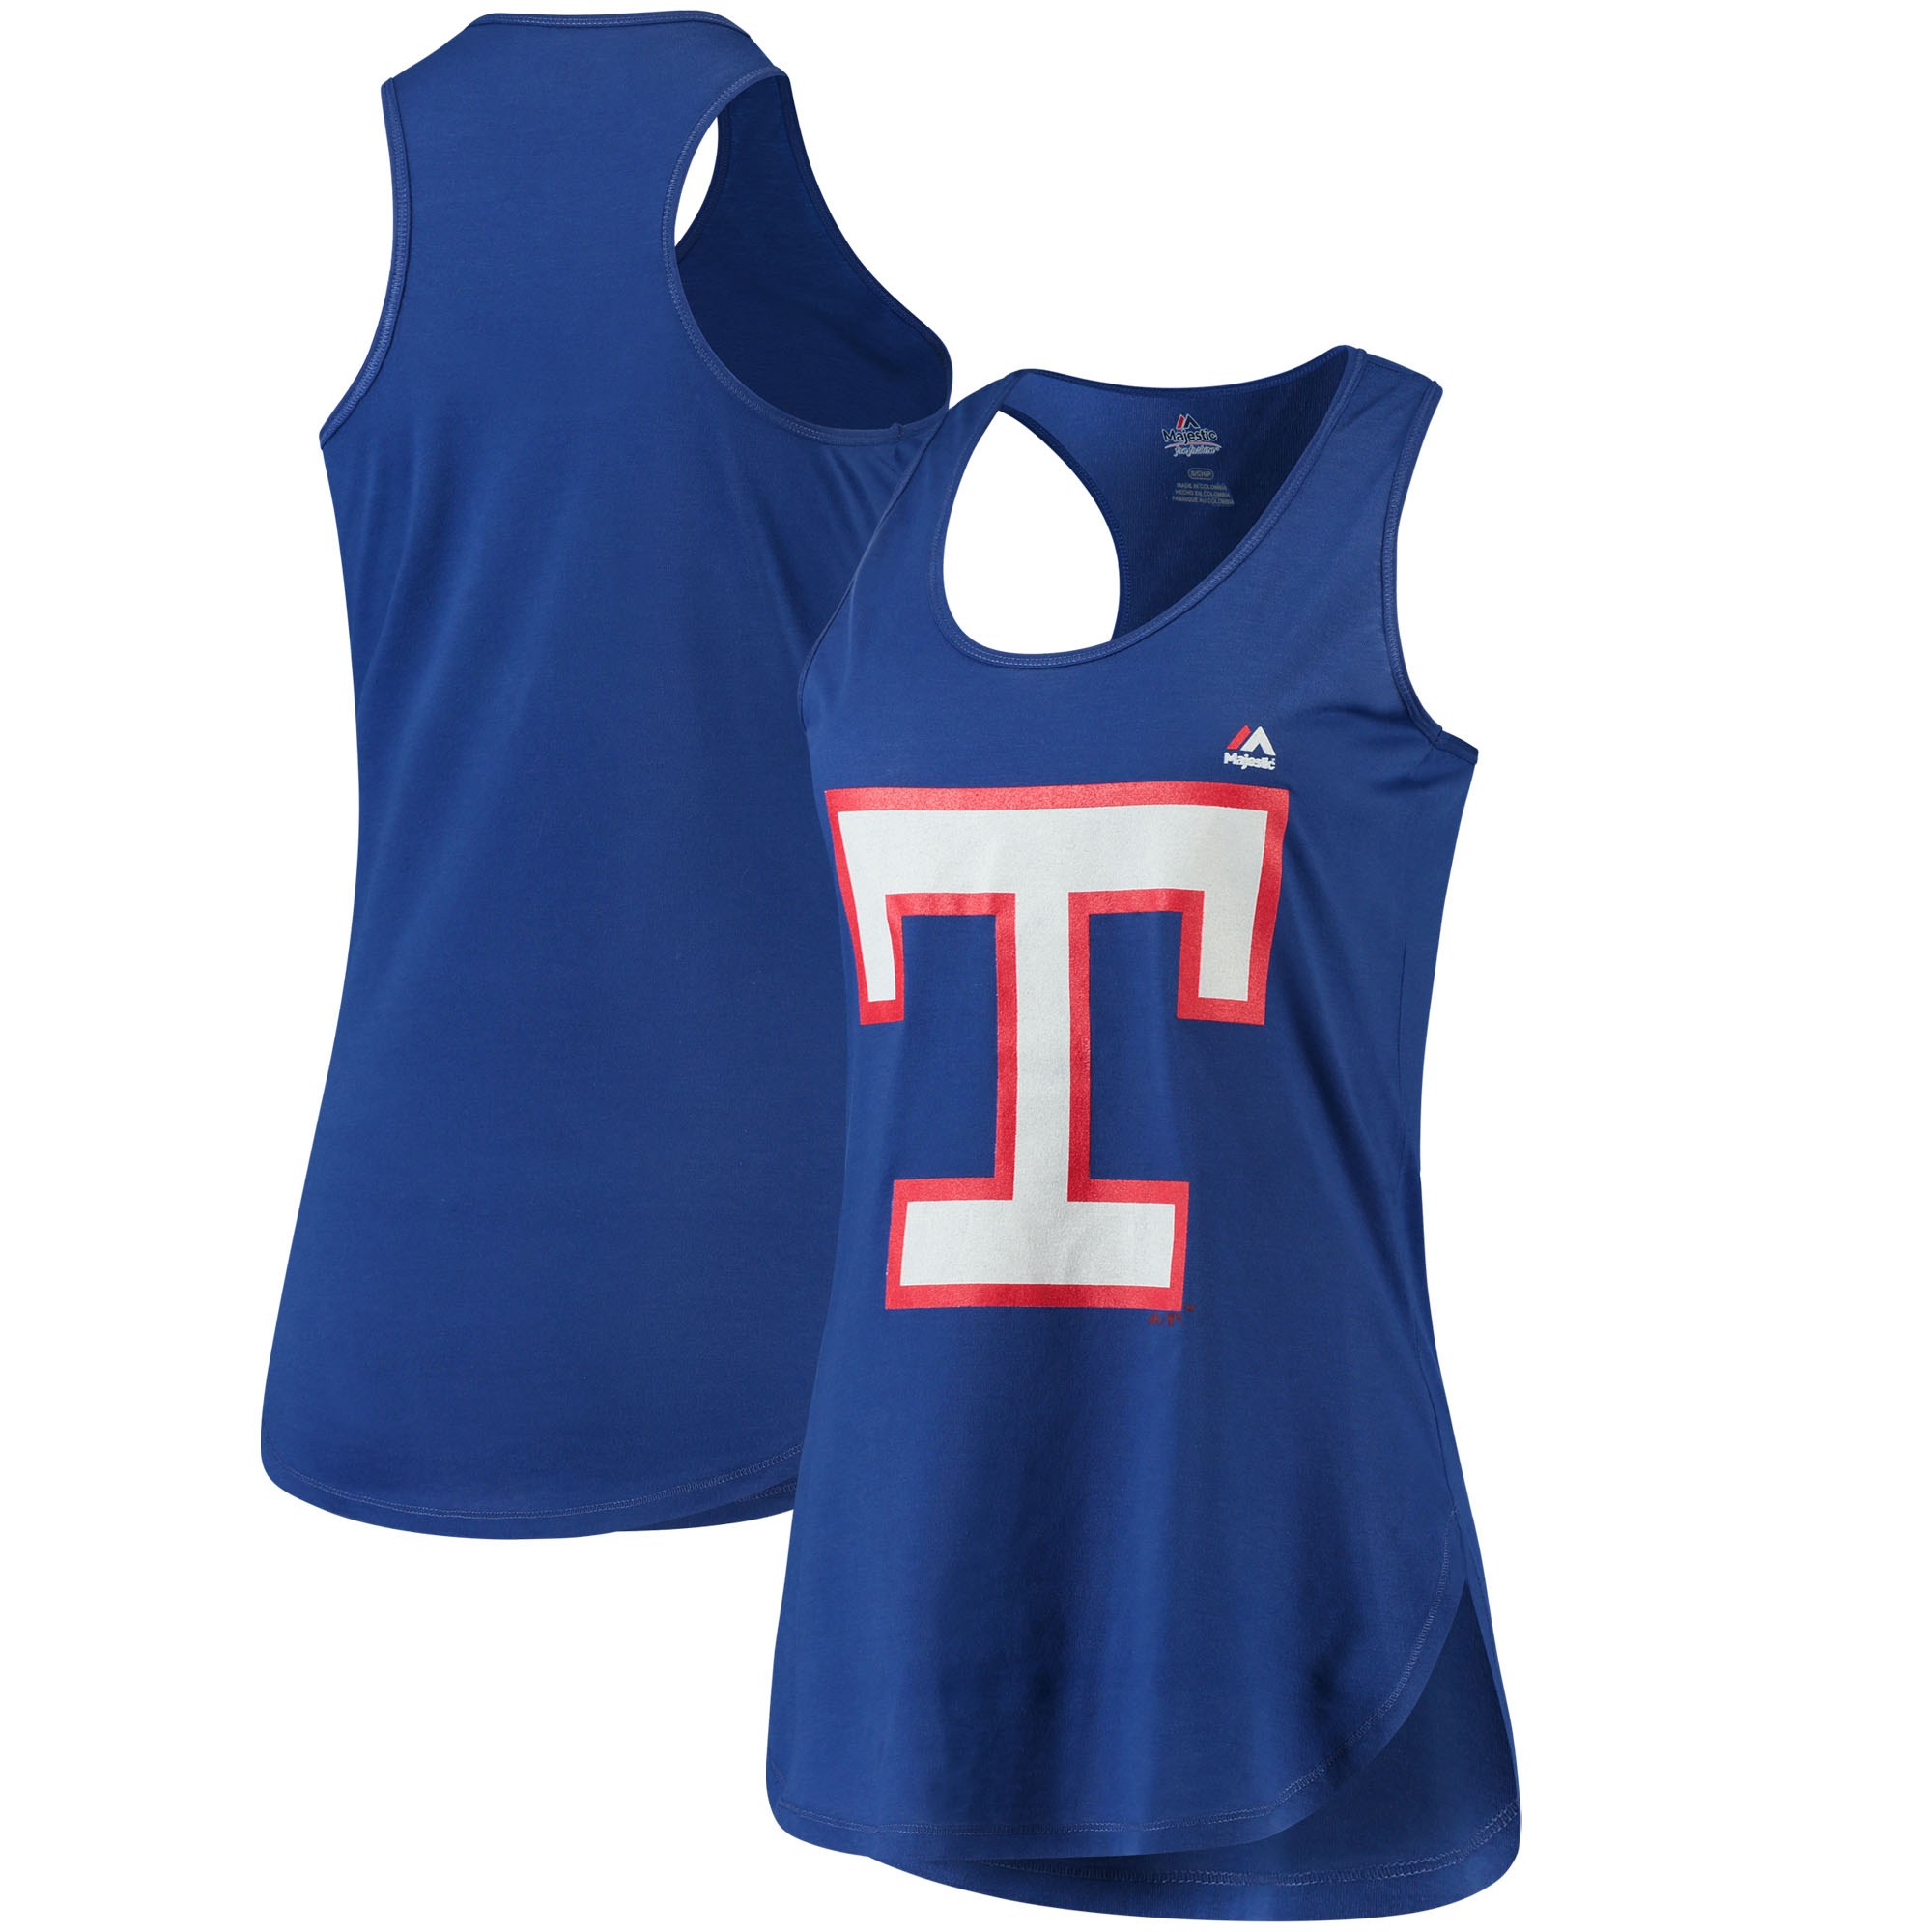 Texas Rangers Majestic Women's Tested Cooperstown Collection Racerback Tank Top - Royal